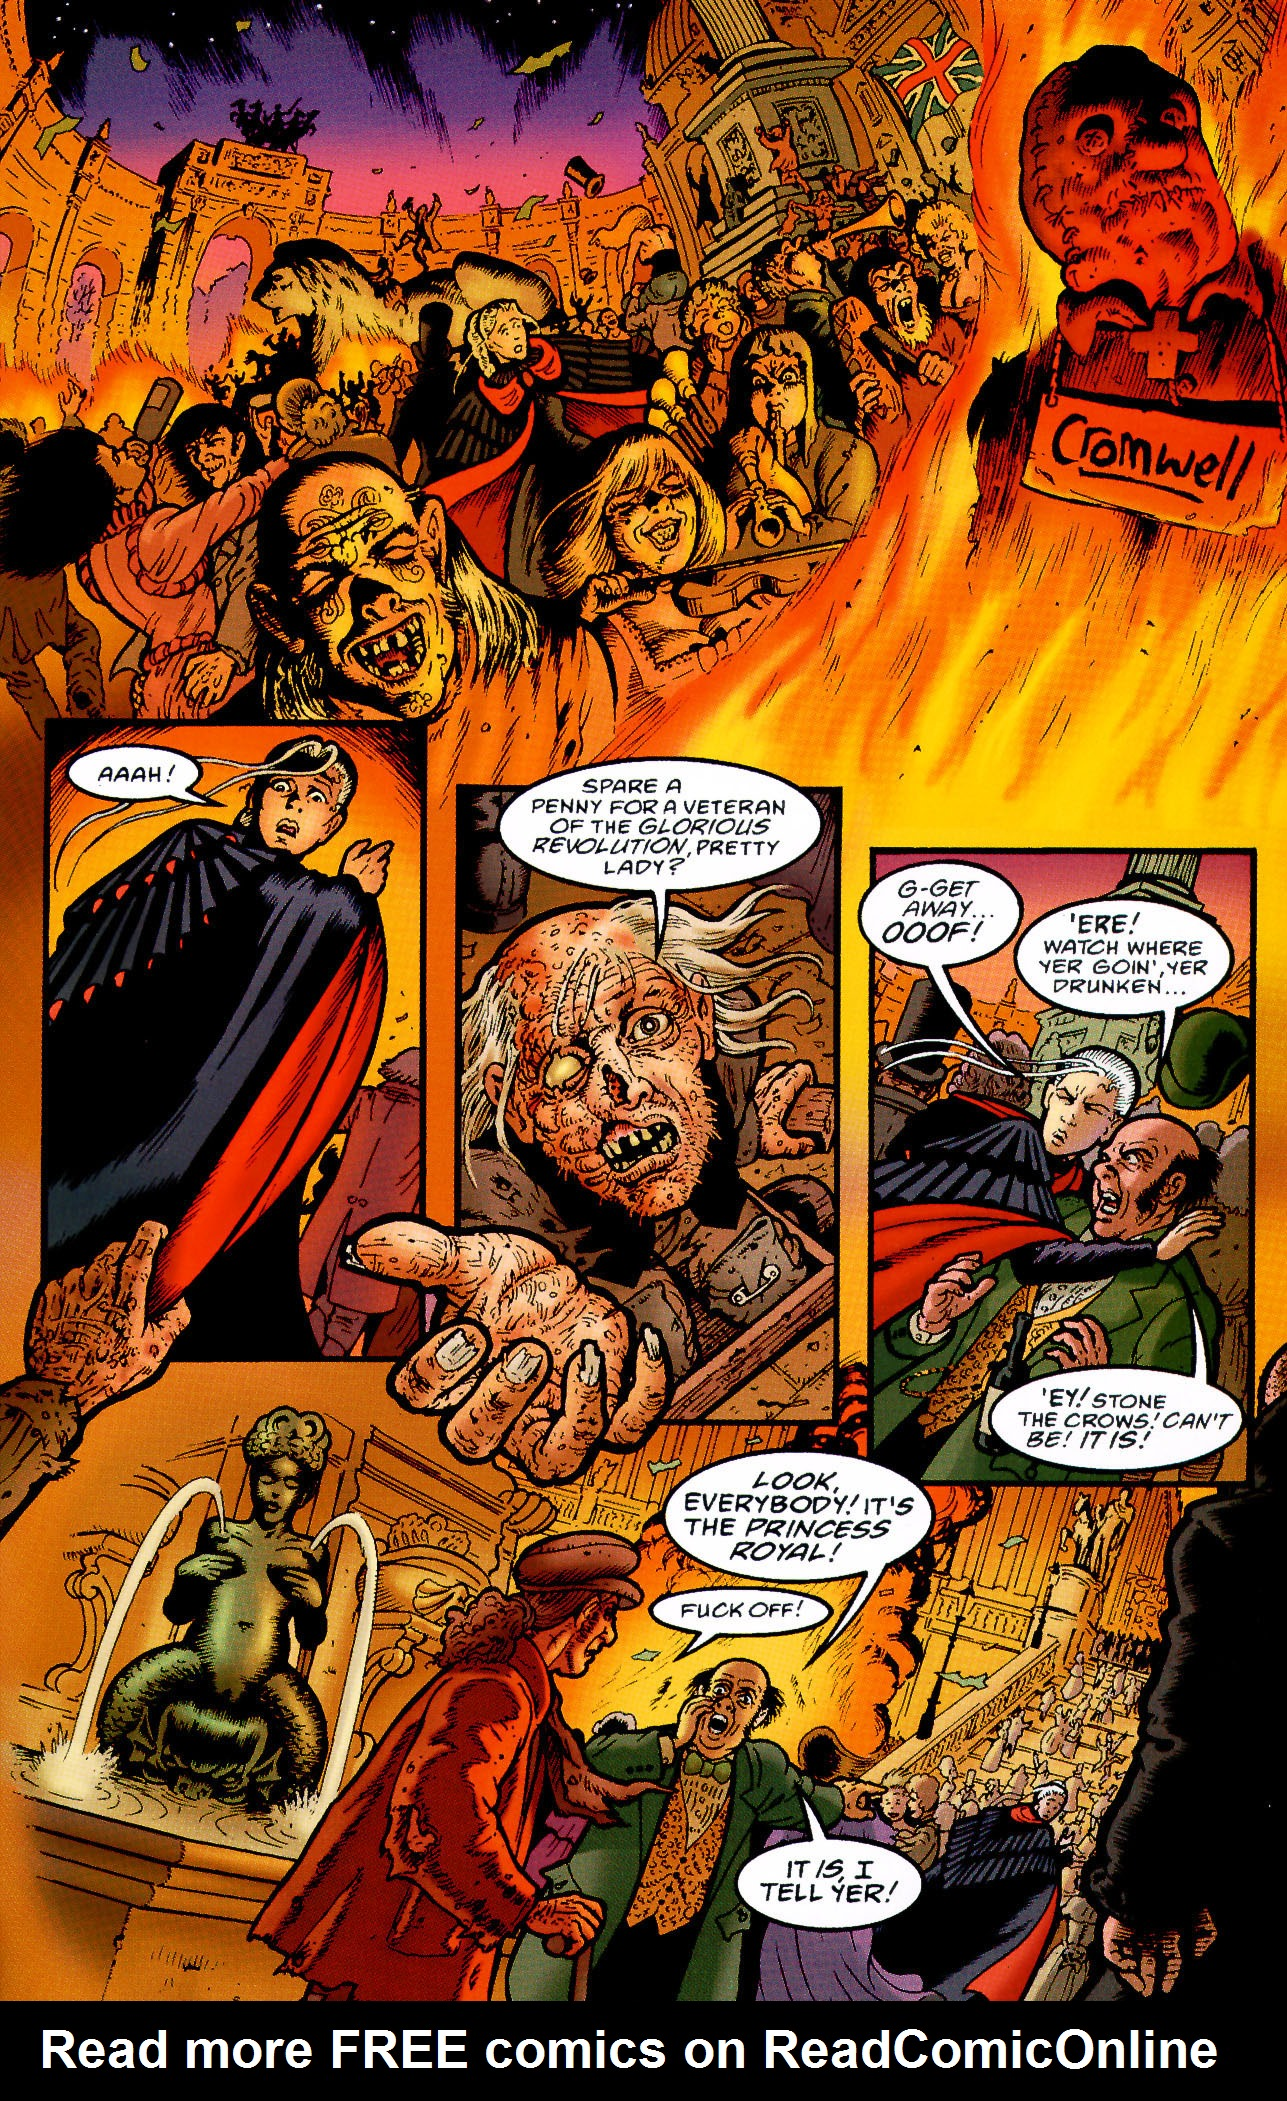 Read online Heart of Empire comic -  Issue #5 - 33